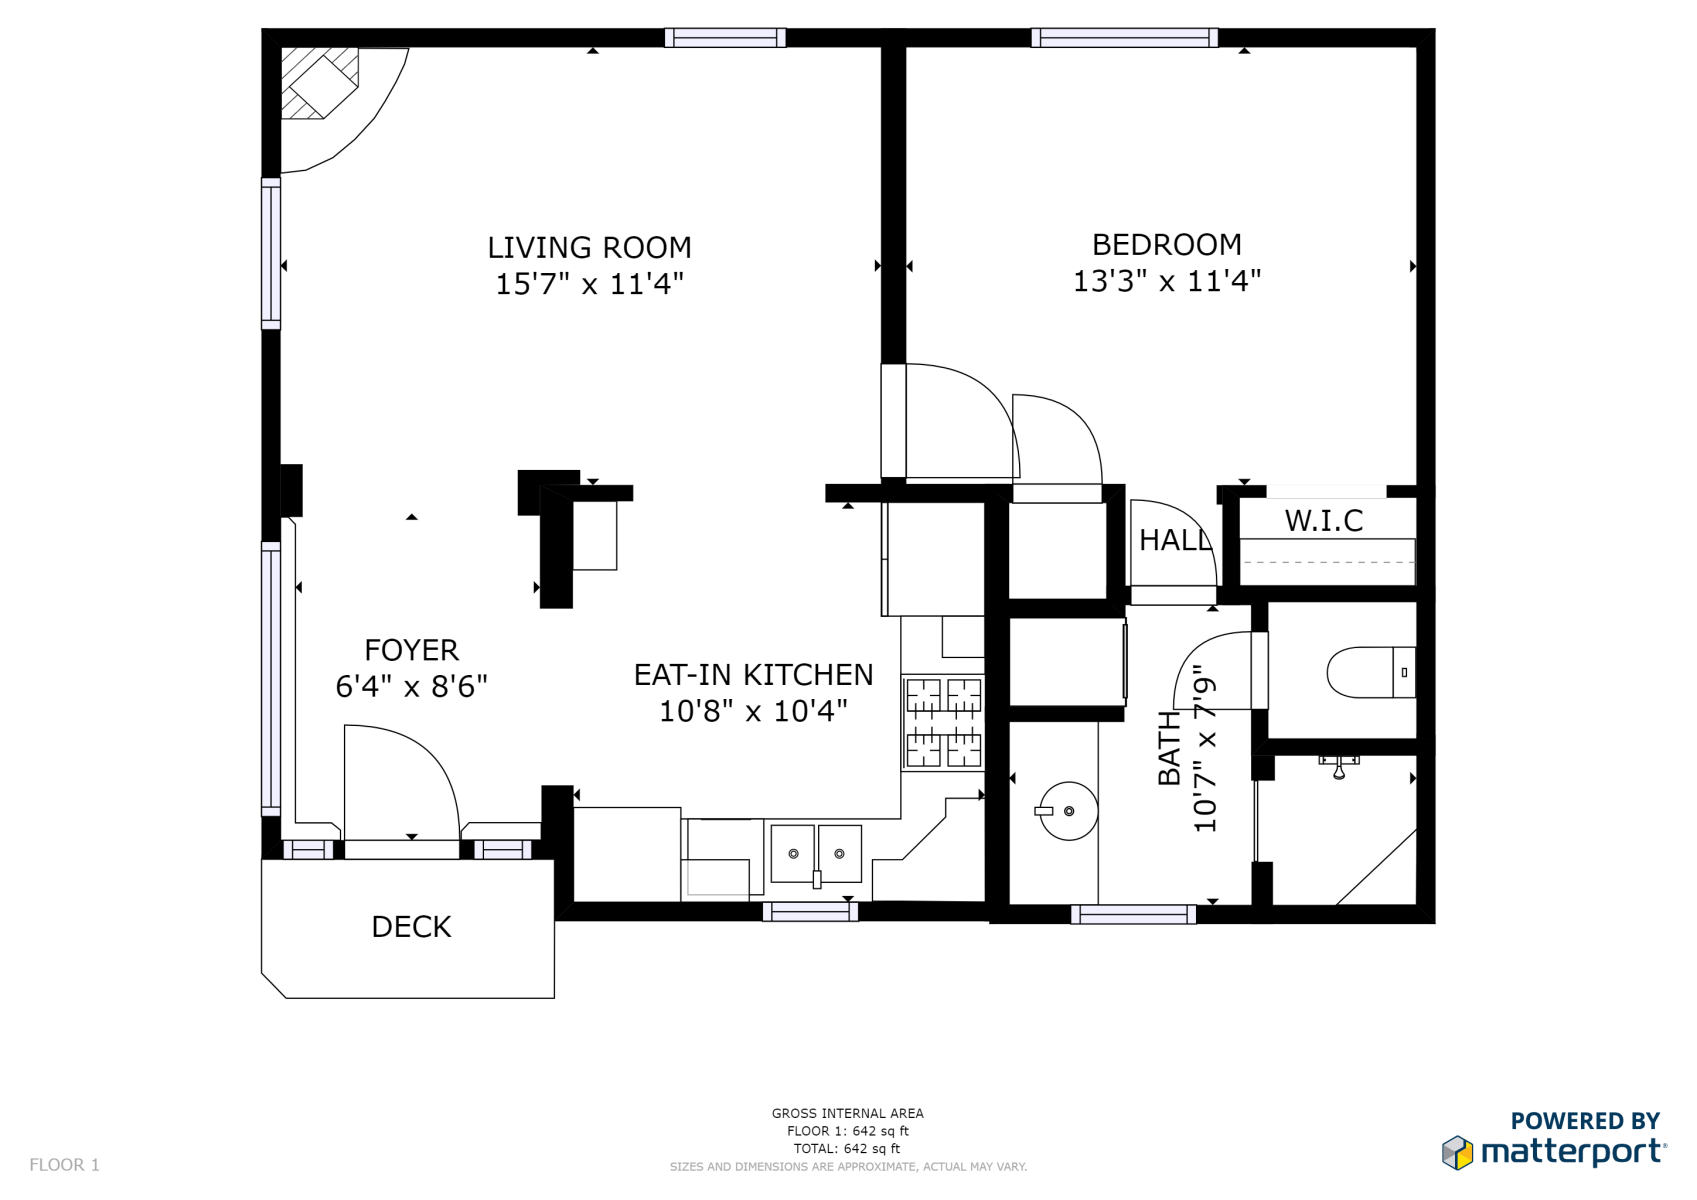 Floor Plan for Casita Madera - 1 Bed / 1 Bath